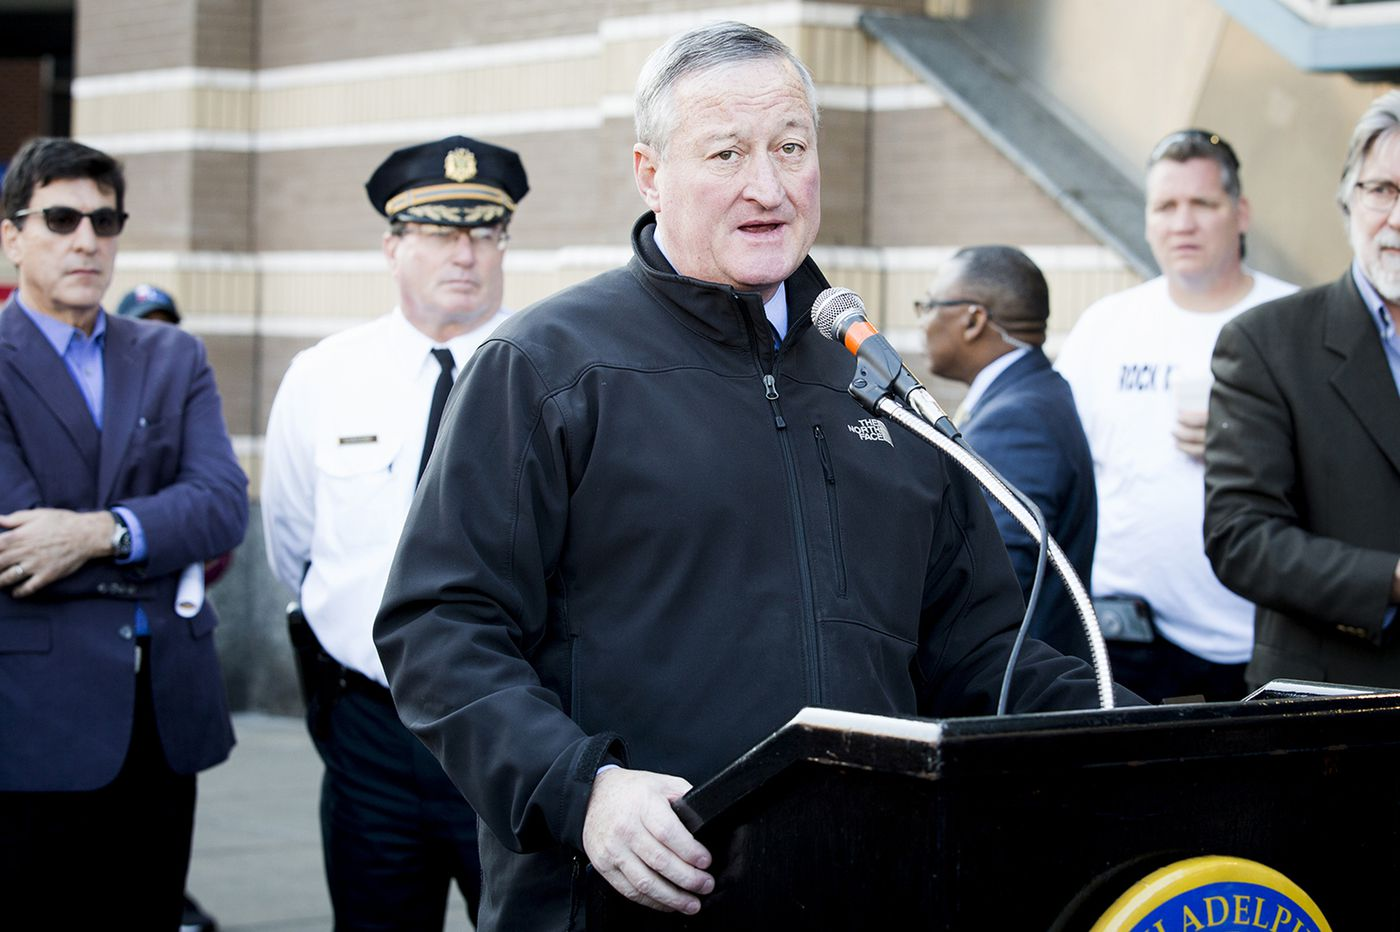 Philadelphia officials, including Mayor Kenney, visit supervised injection sites in Canada